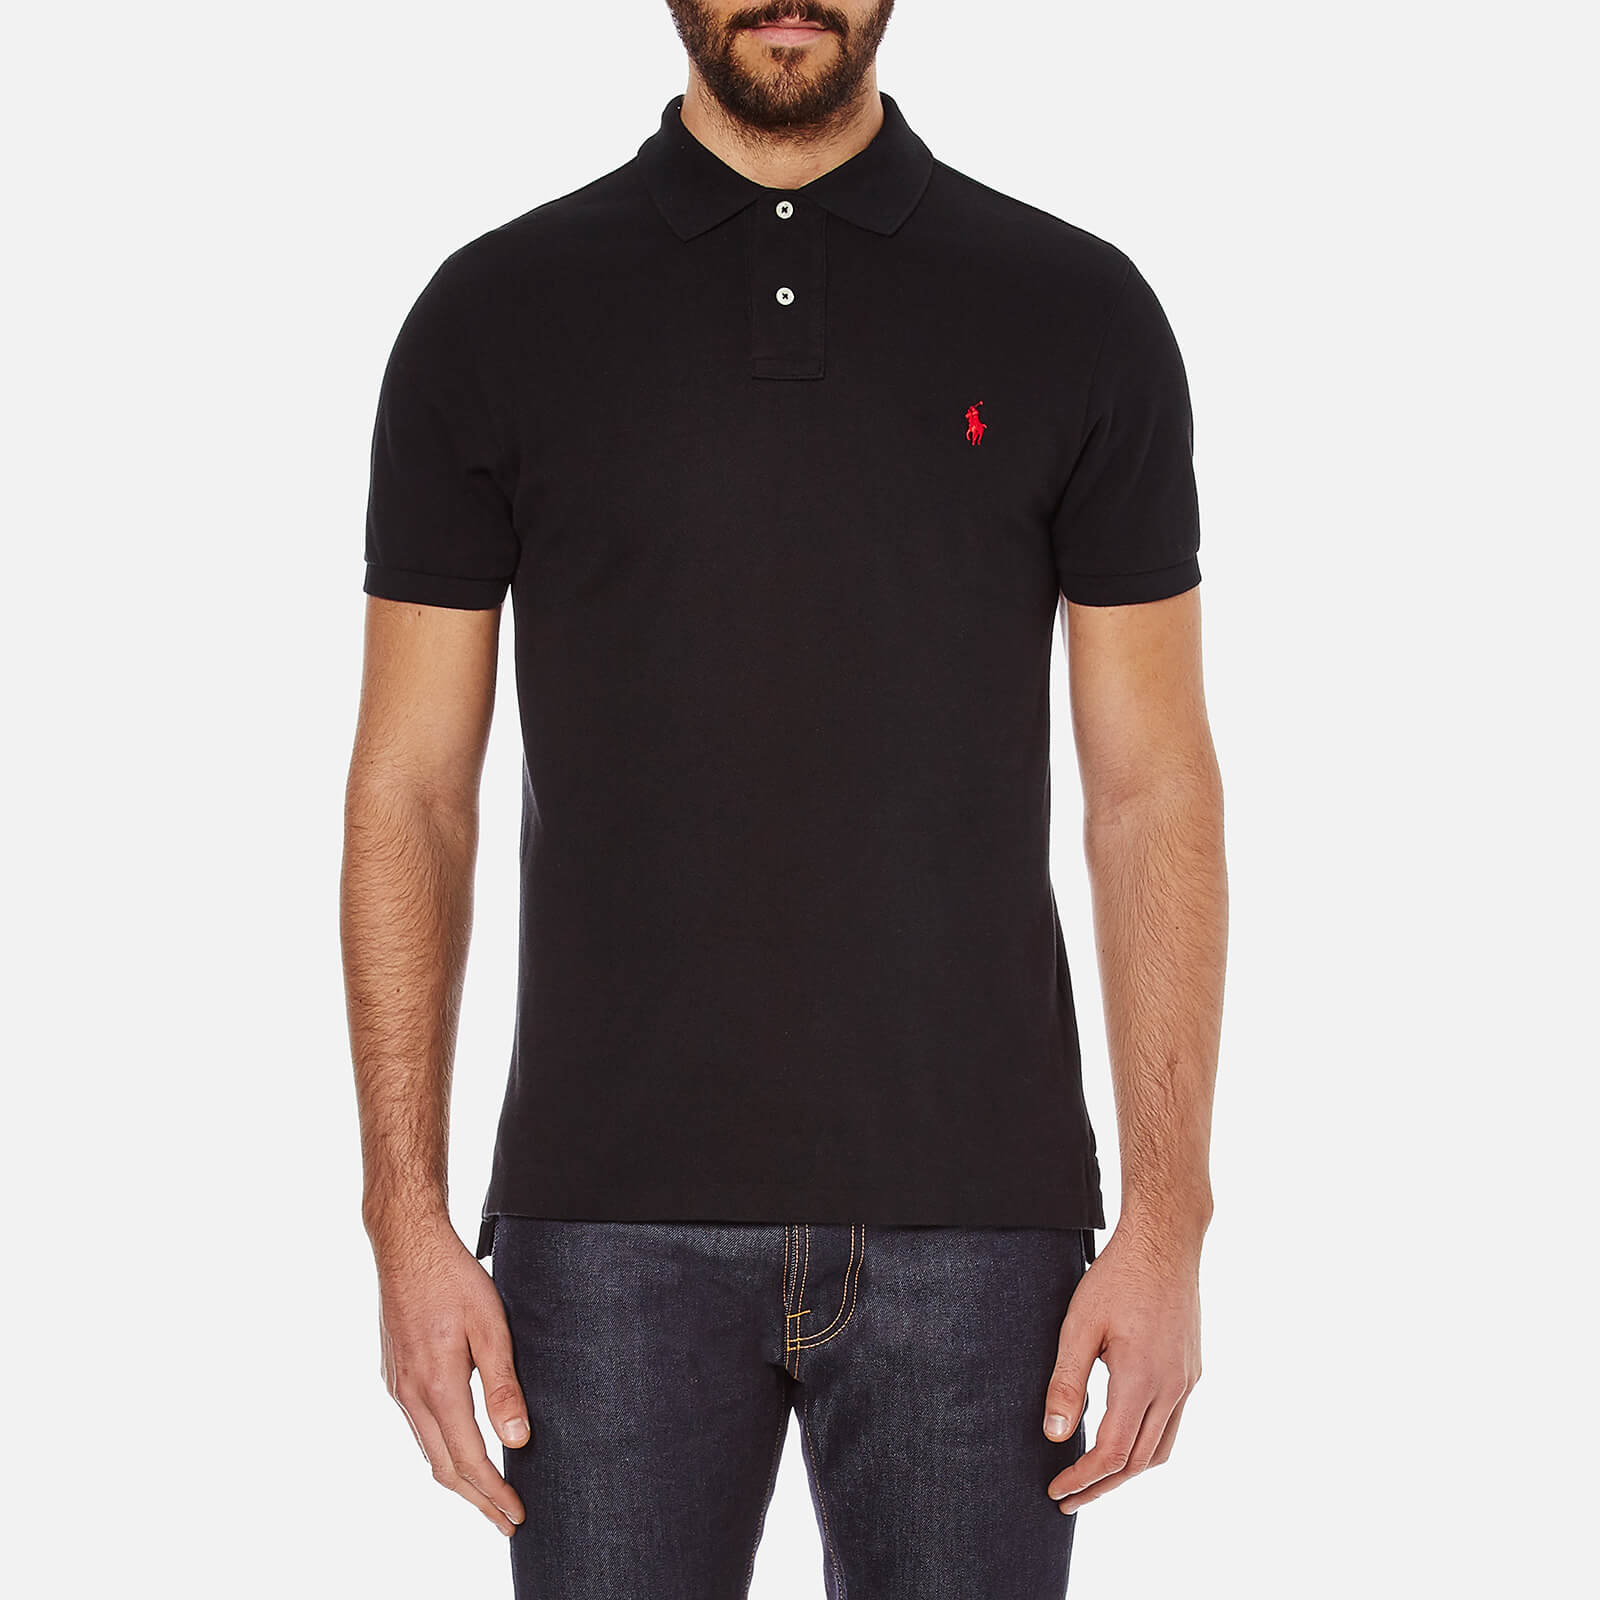 af2882cddb39 Polo Ralph Lauren Men s Slim Fit Short Sleeved Polo Shirt - Polo Black -  Free UK Delivery over £50